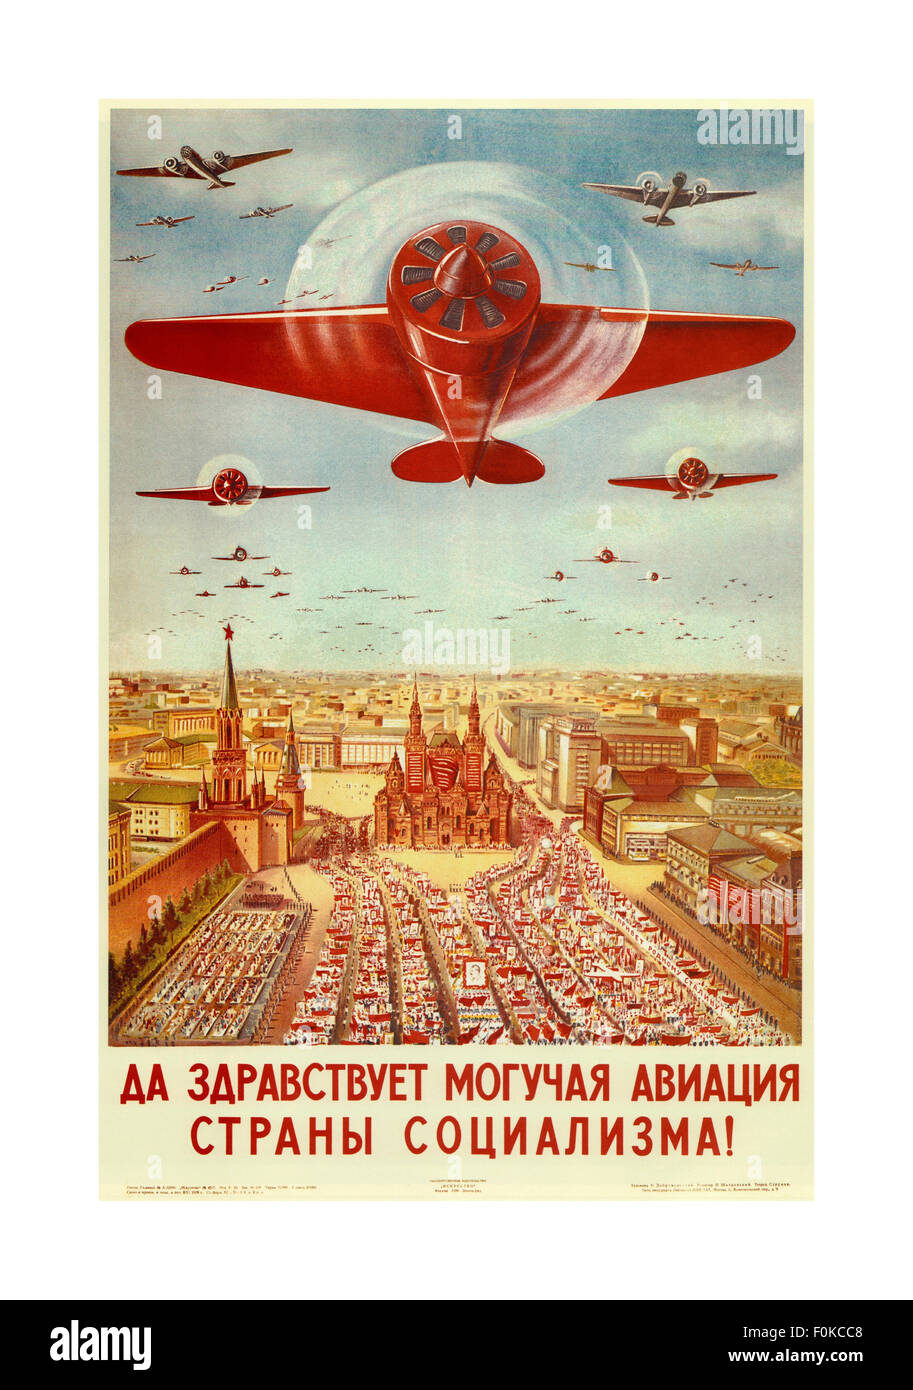 "V. Dobrovolsky (1939), ""Long live the mighty air force of the land of socialism!"" Russian vintage propaganda parade - Stock Image"